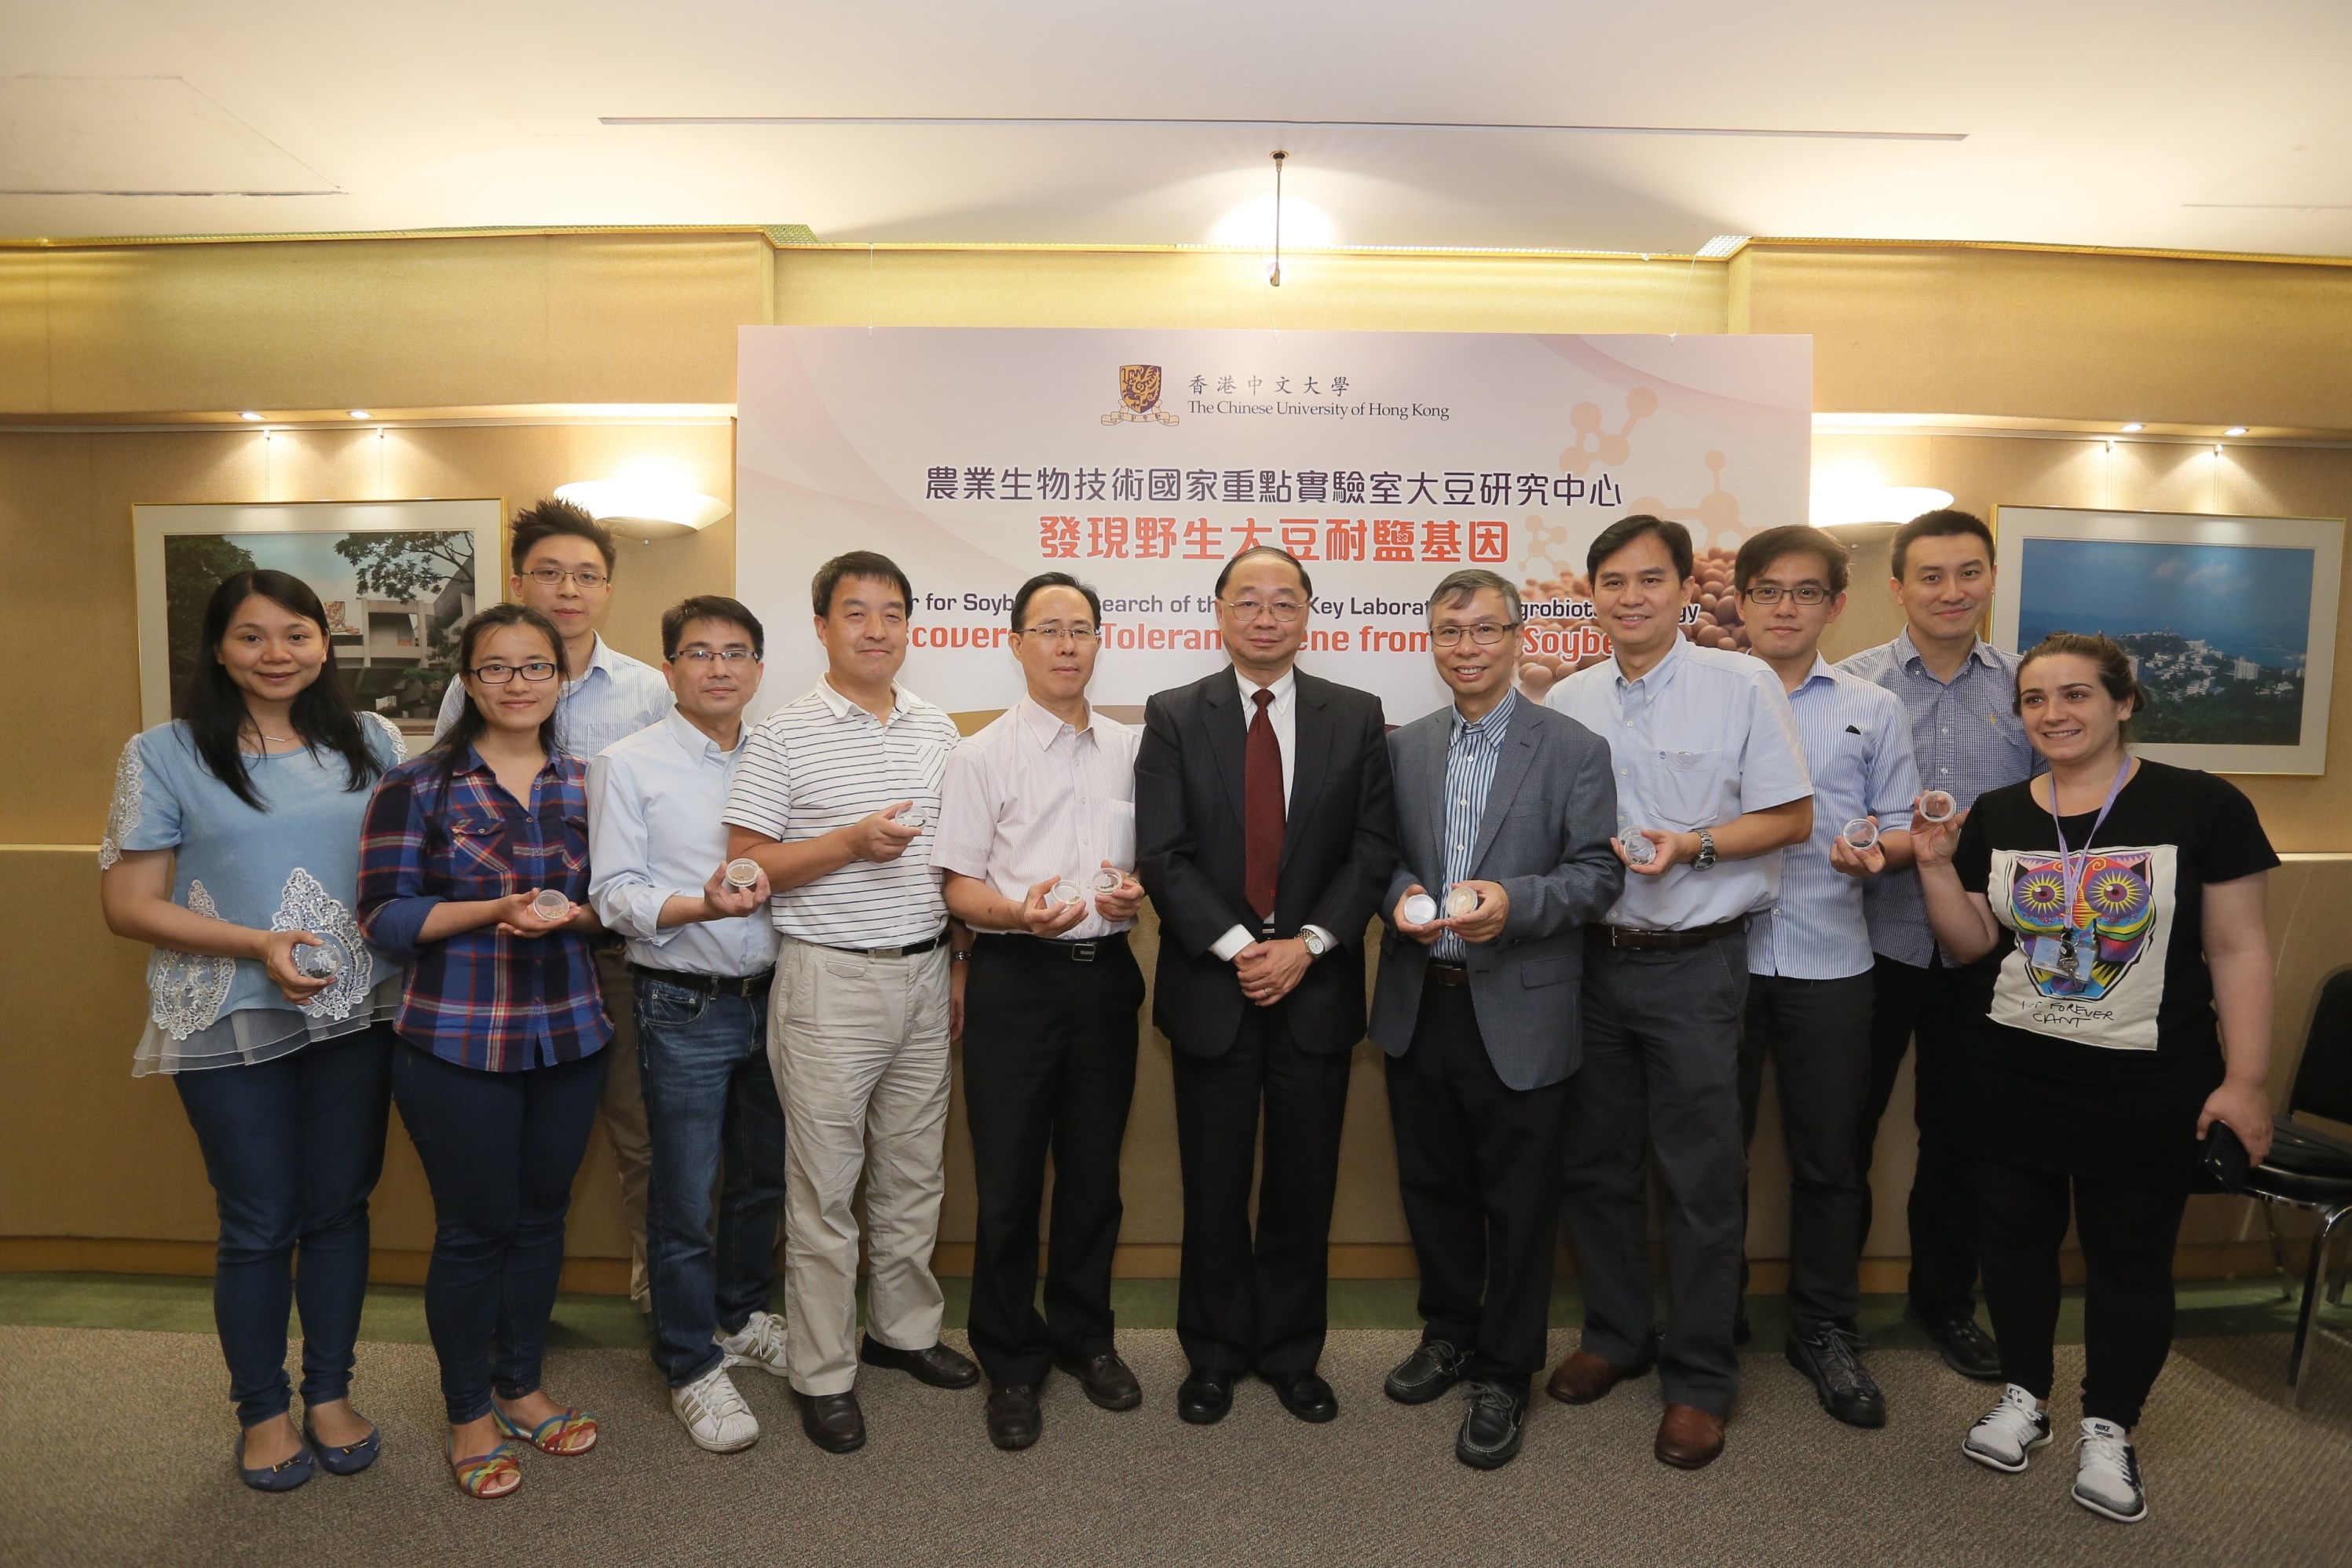 Prof Henry Wong, Dean of Faculty of Science (middle), Professor Lam (5th right) and his team members at the Center for Soybean Research, CUHK.